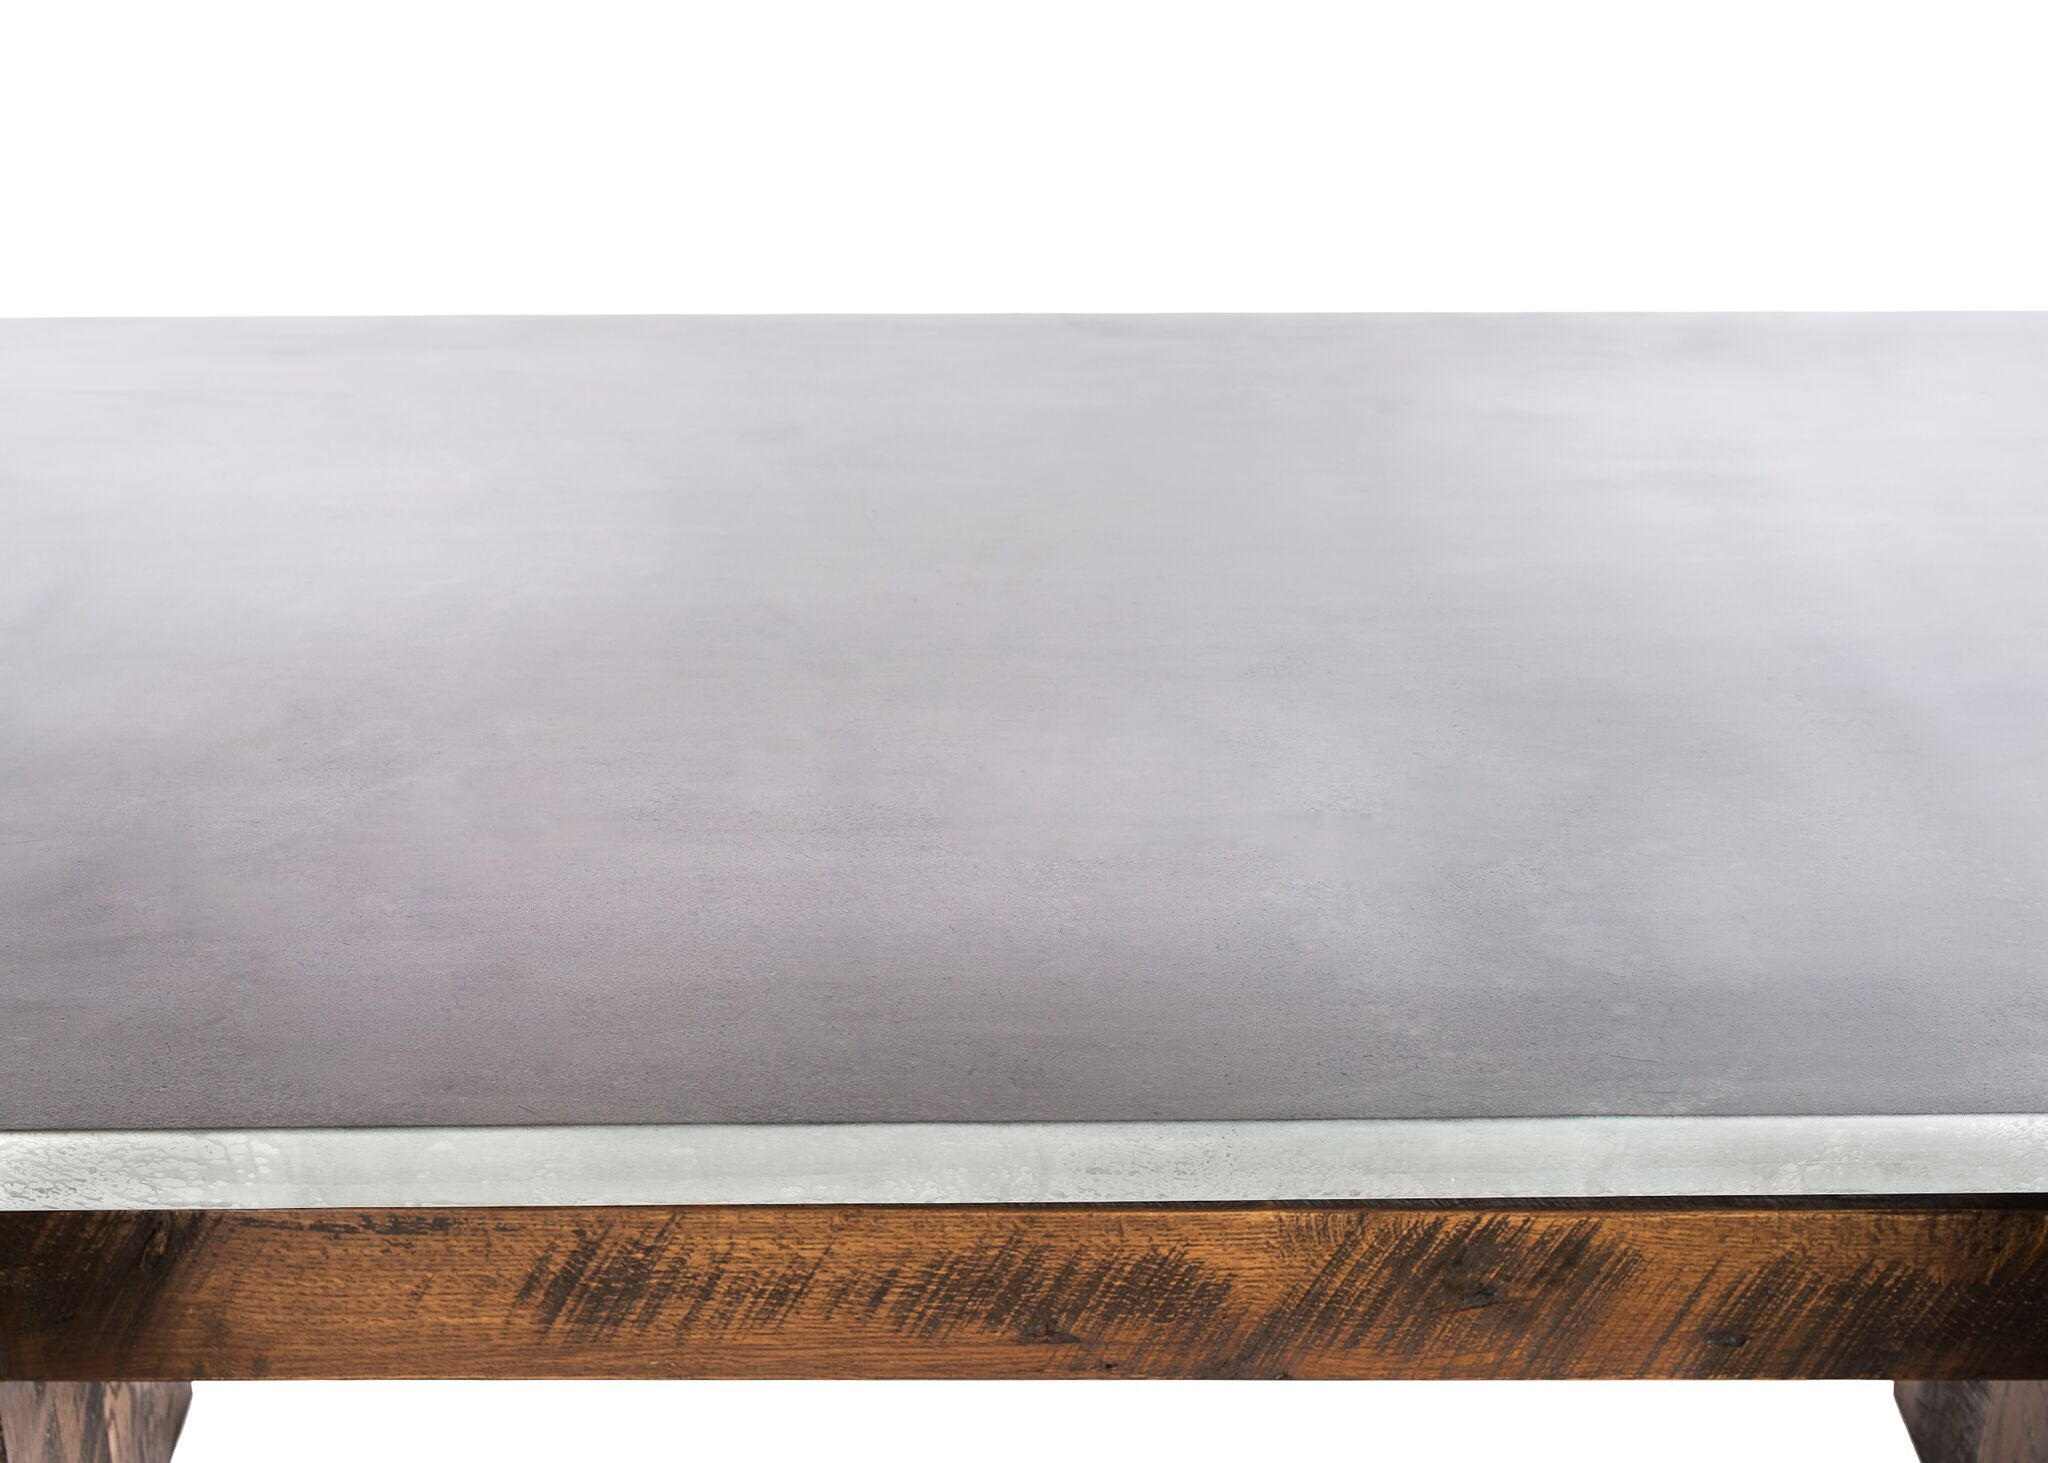 Zinc Table Tops | SIZE: 0 | QTY: 2 | EDGE PROFILE: Double Row of Rivets